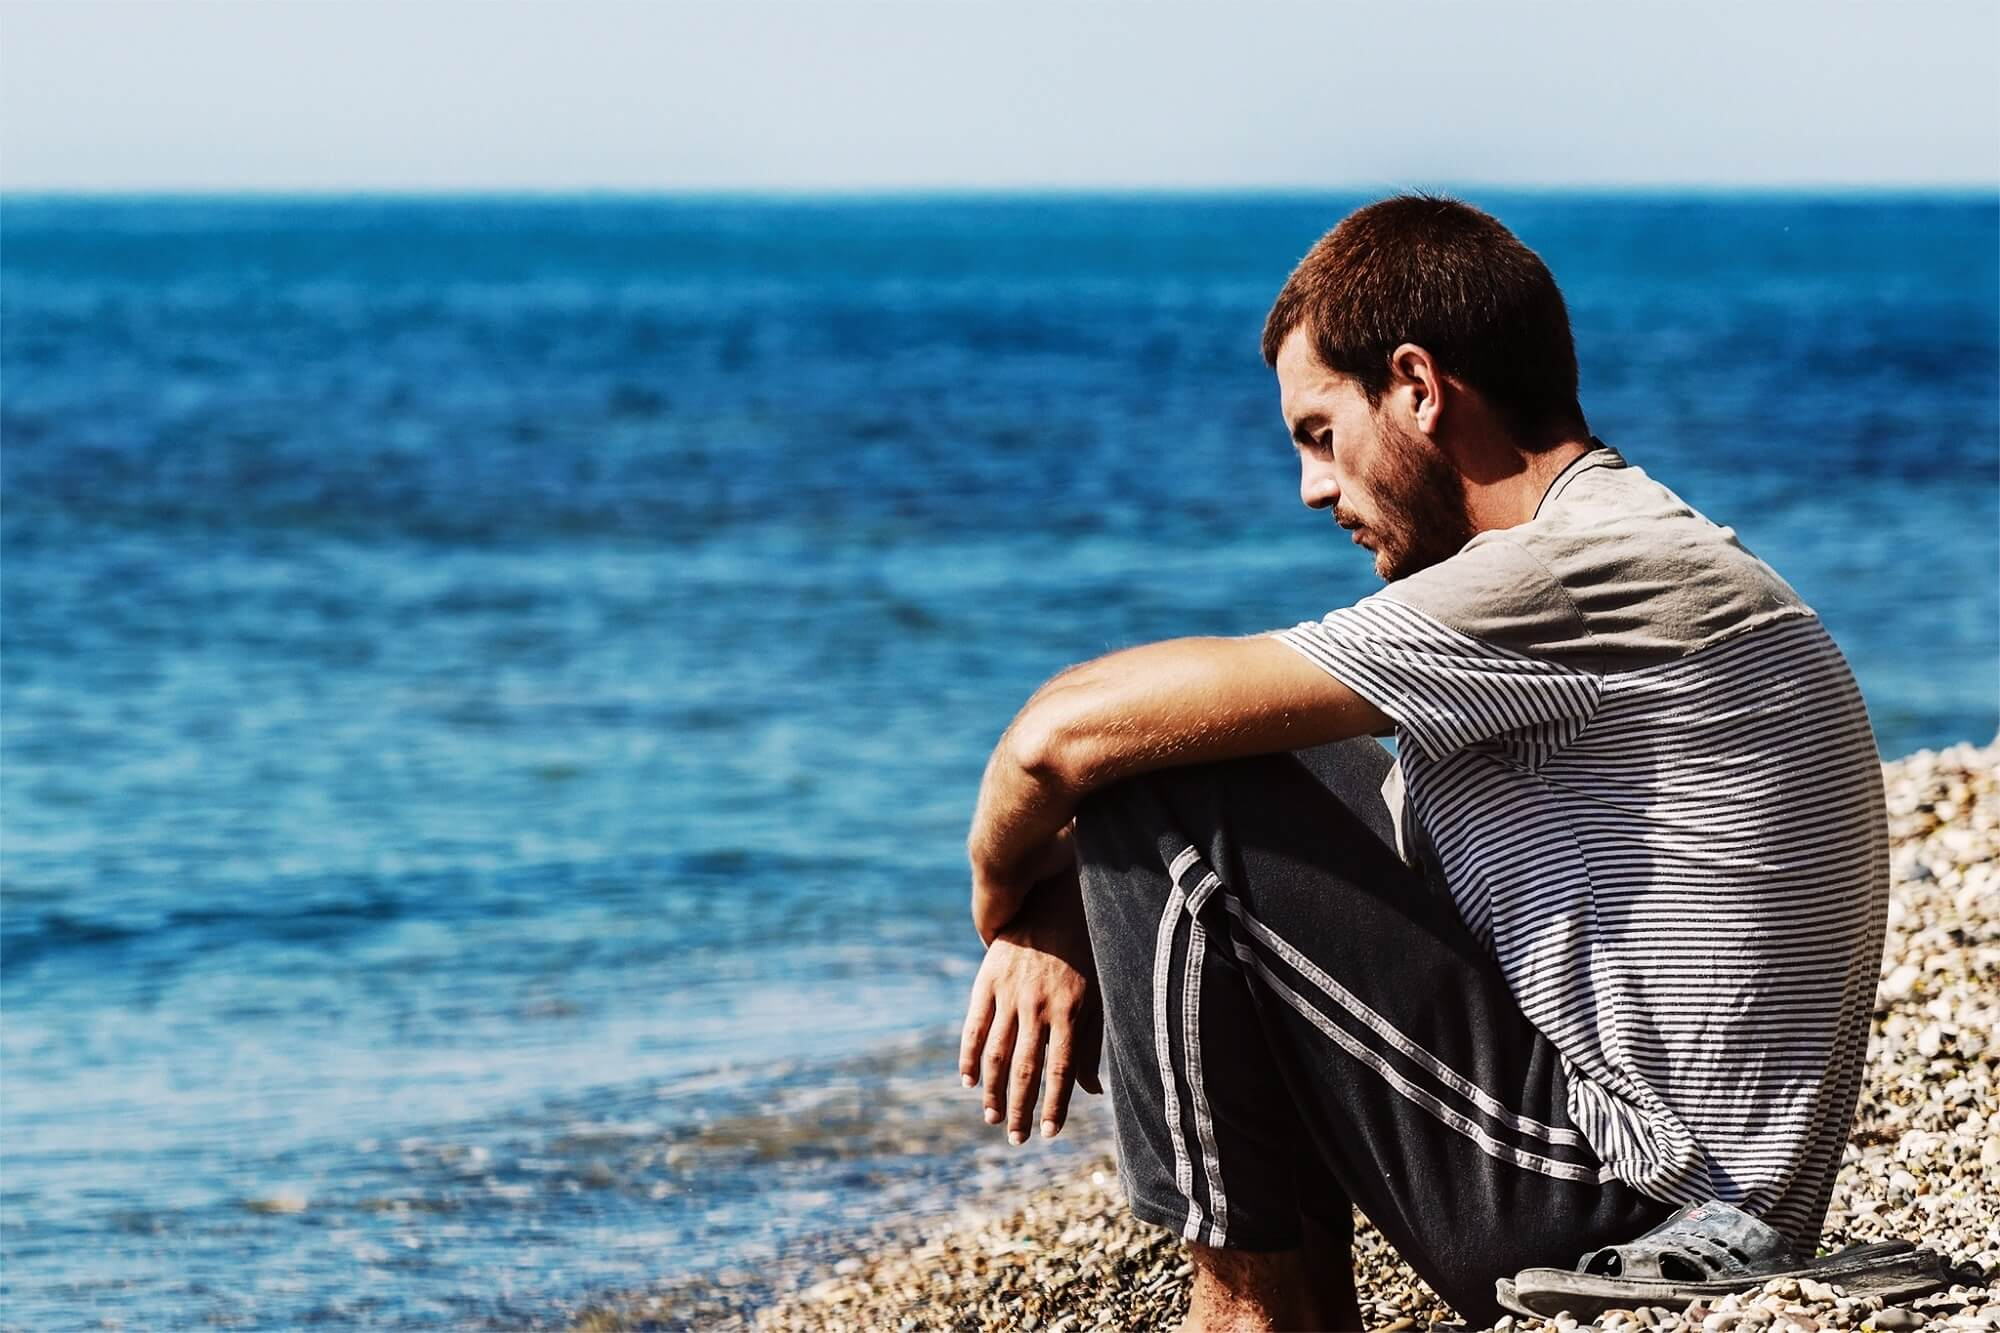 Could Summer Depression Be Seasonal Affective Disorder? - Psychiatry Advisor